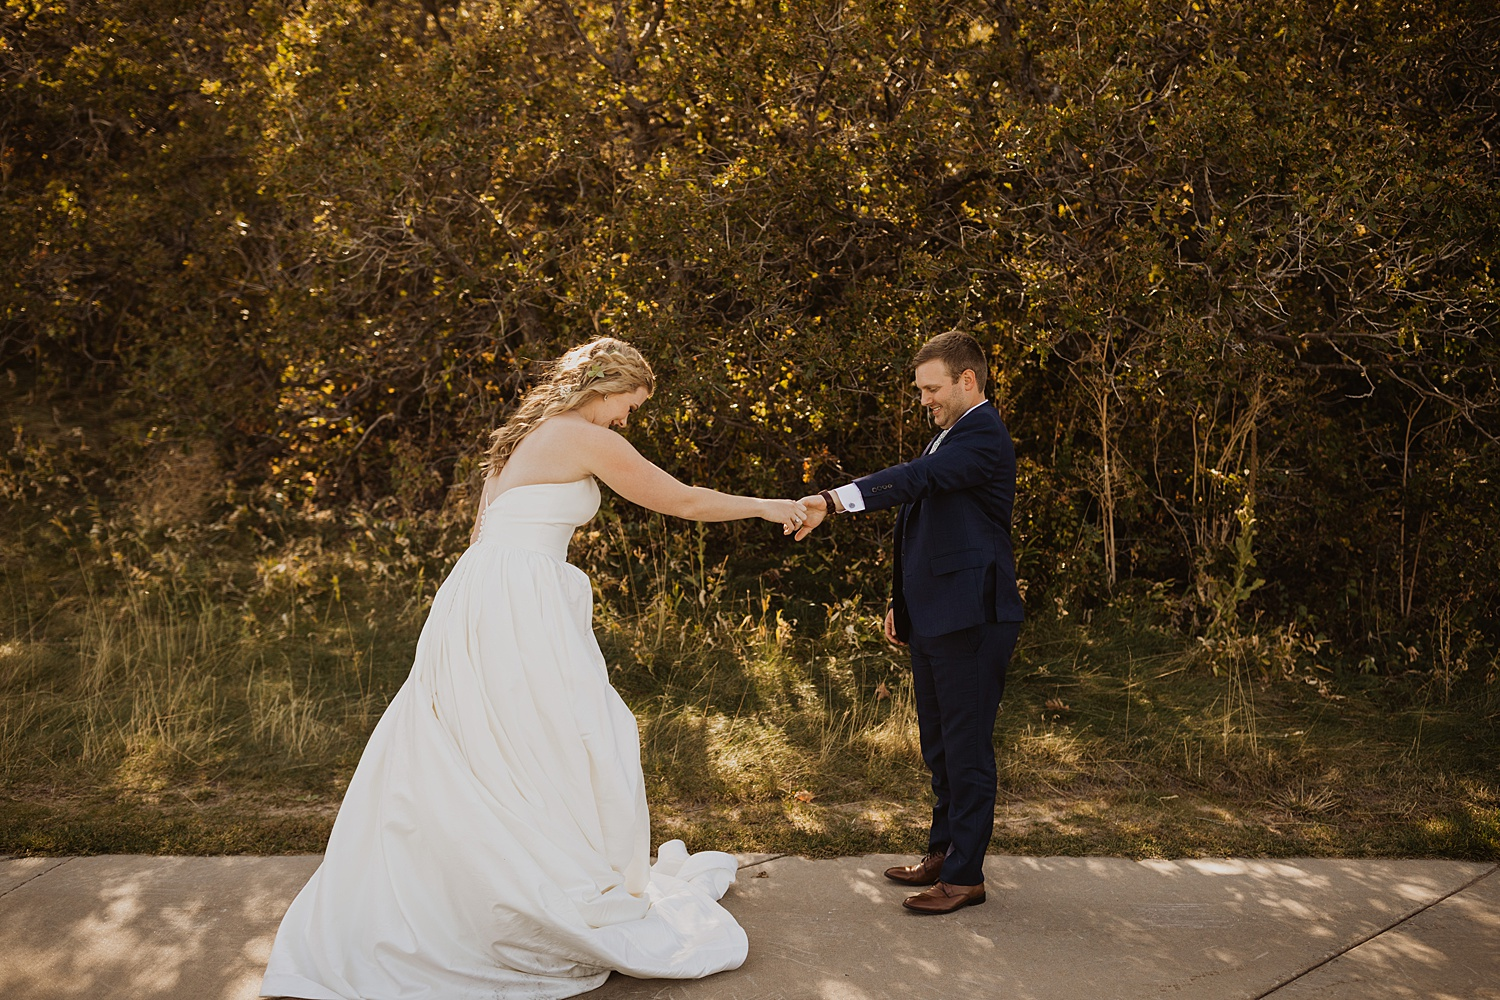 Colorado Wedding | First Look Ideas | Cassie Madden Photography